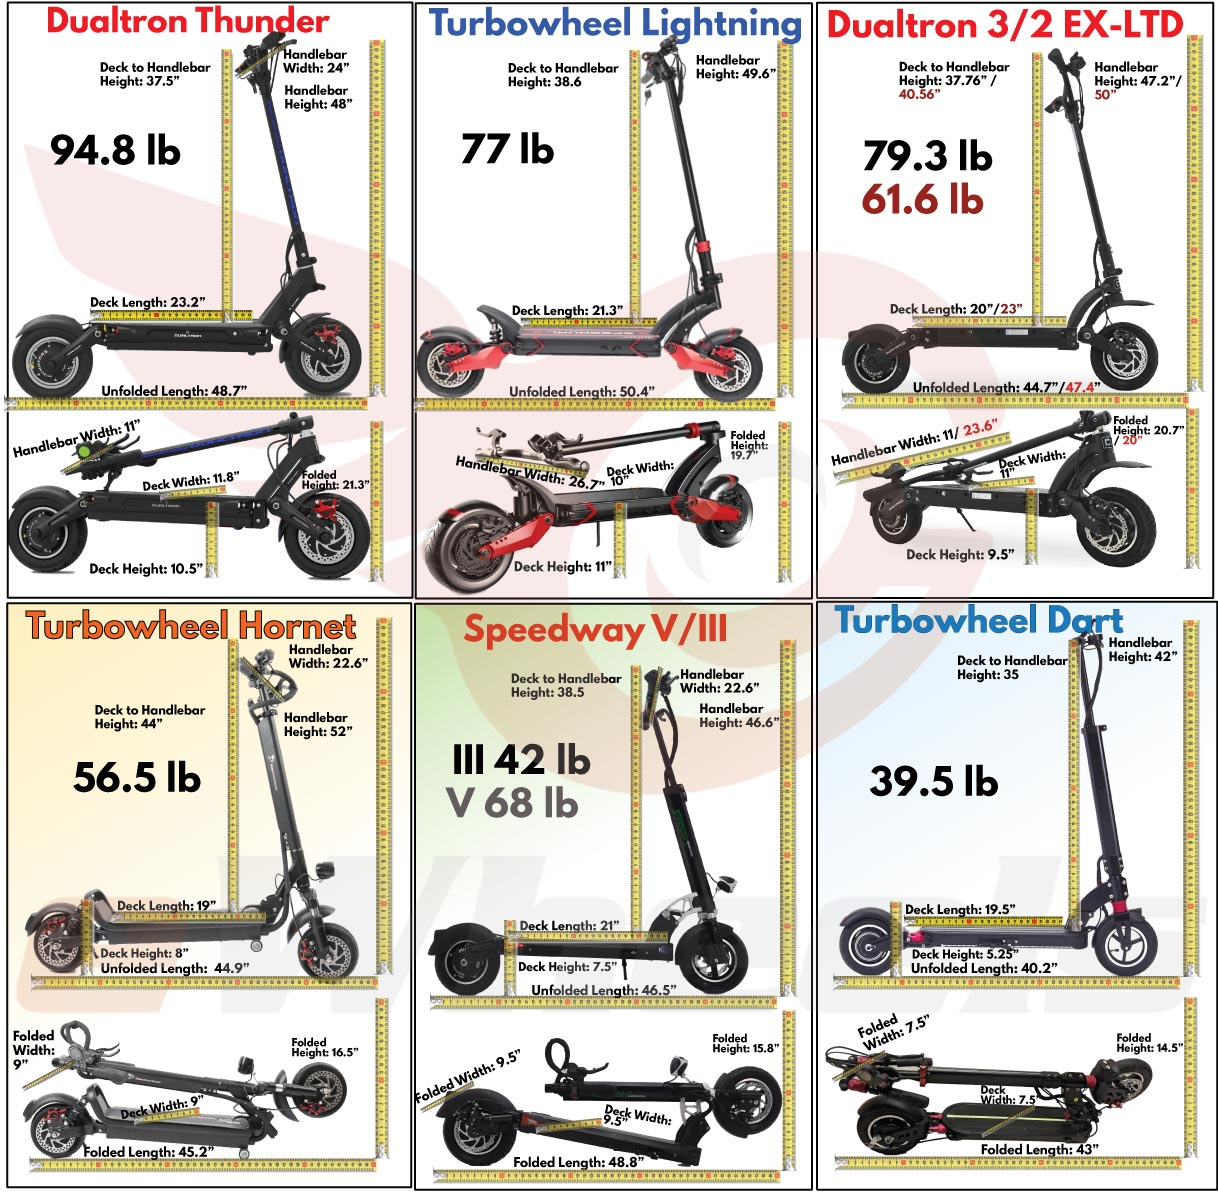 Electric Scooter Dimensions & Weight Comparison Summary Graphic, v1.4